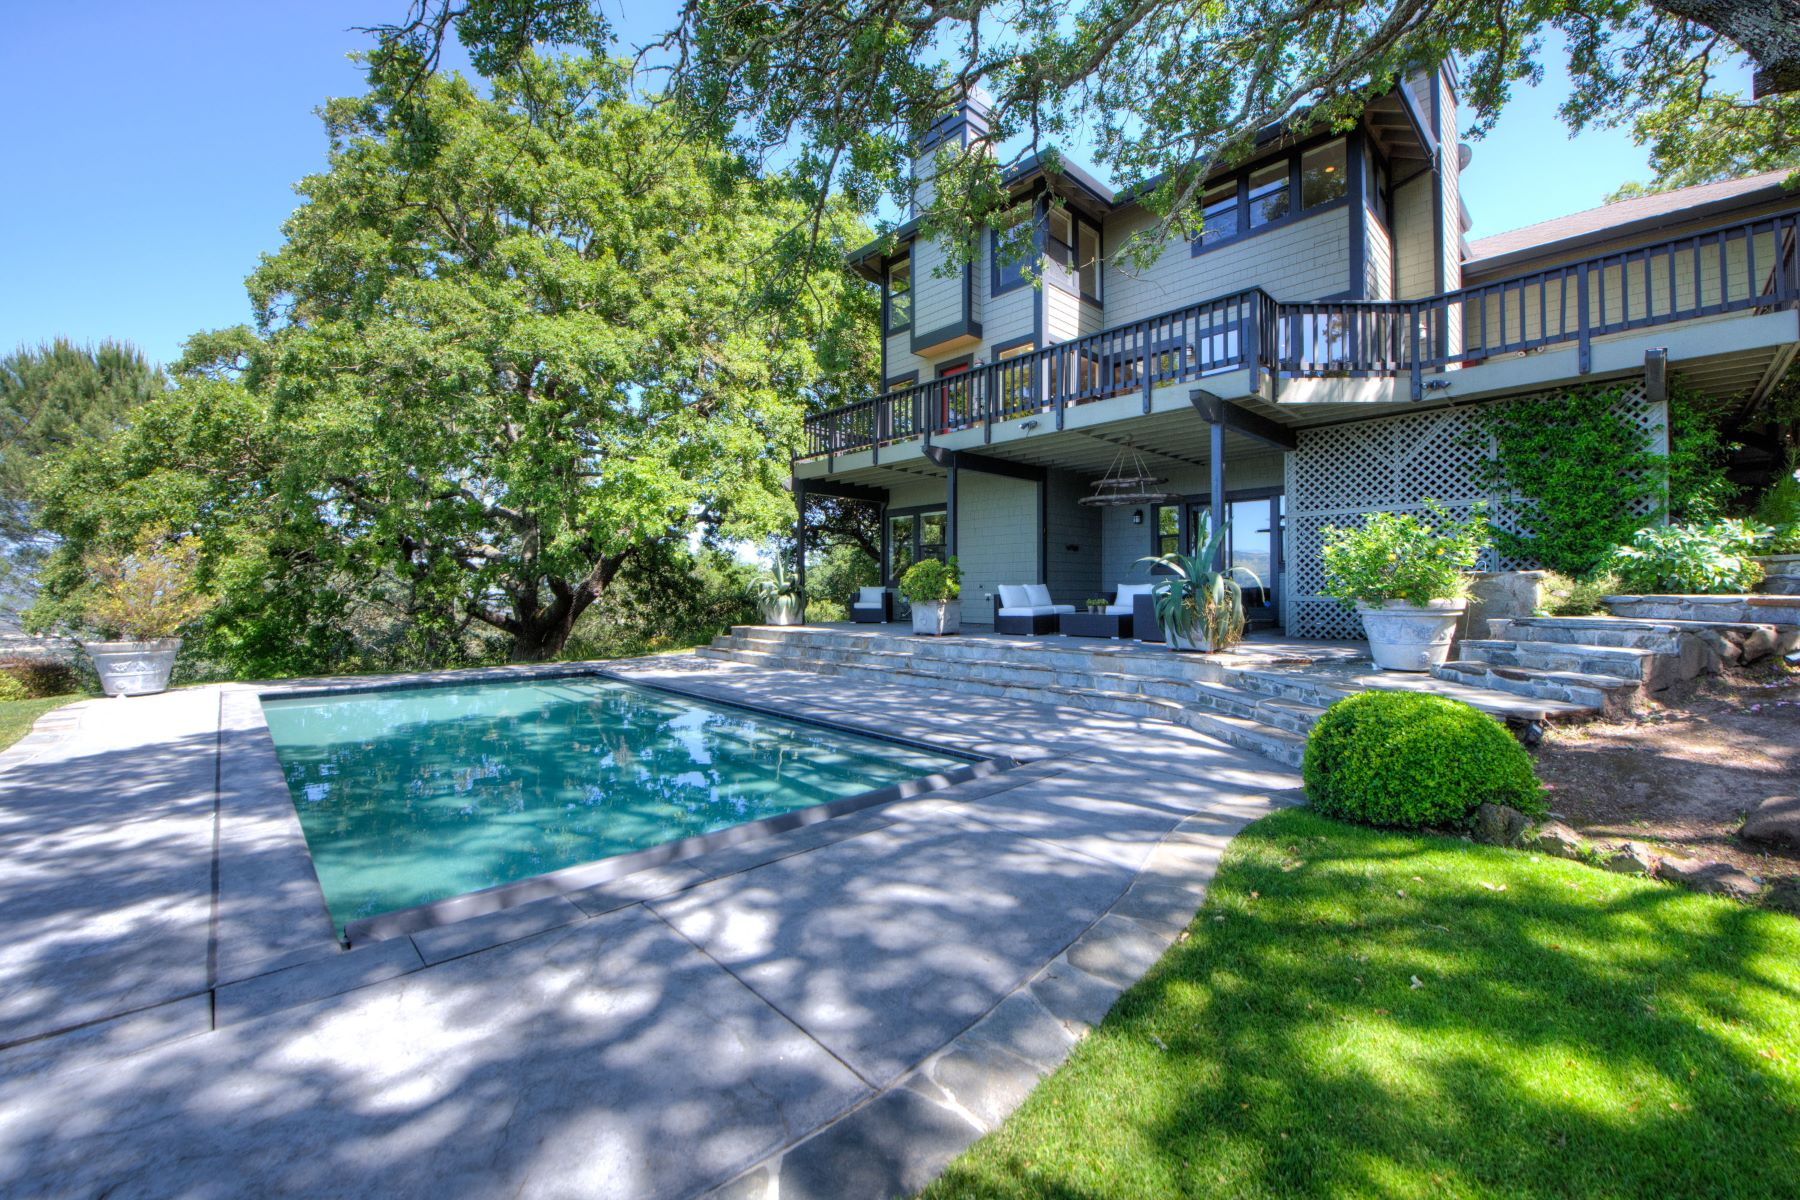 Single Family Home for Sale at Top of the World Views in Southern Novato 792 Rowland Boulevard Novato, California 94947 United States